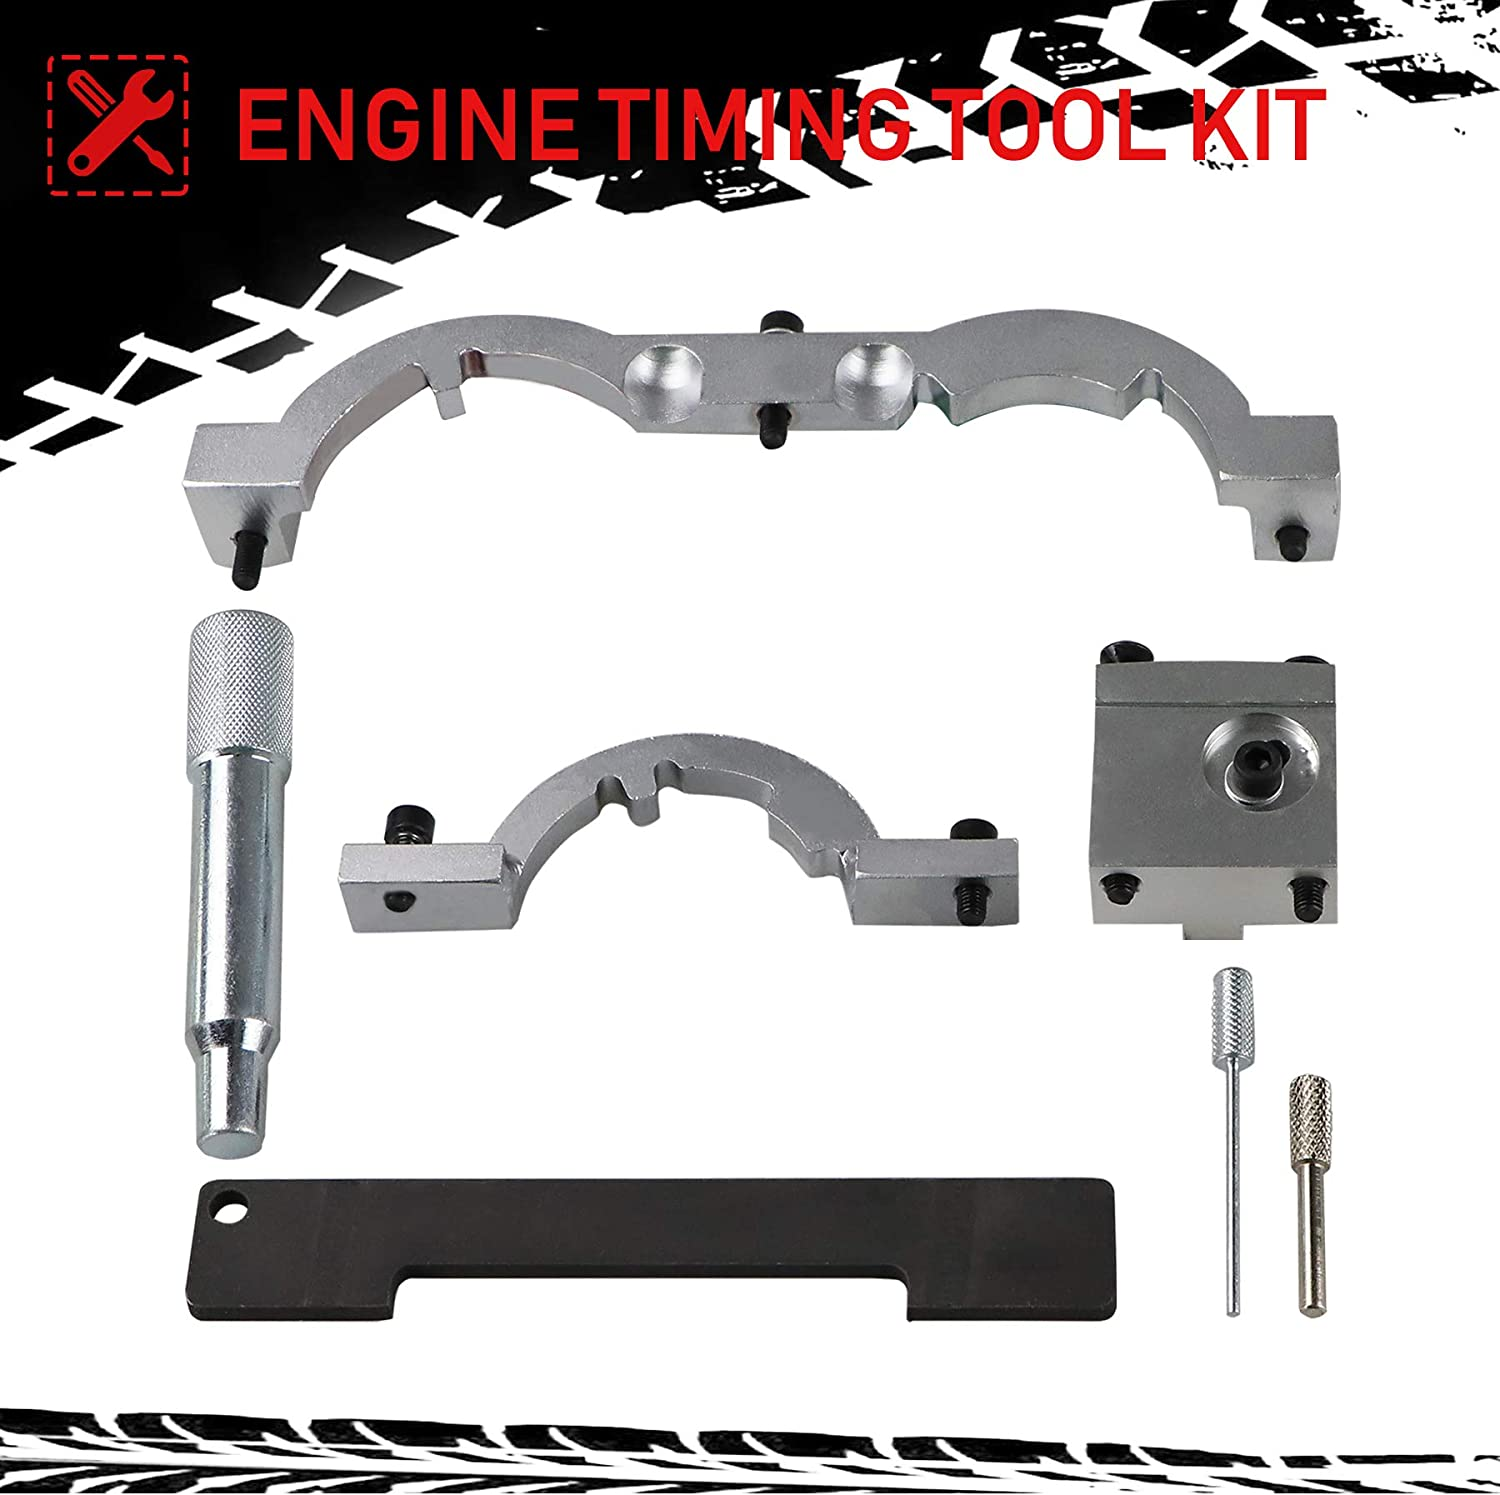 for Timing Chain Replacing Youxmoto Turbo Engine Timing Tool Kit for Vauxhall Opel Chevrolet Cruze 1.0 1.2 1.4 Cylinder Head /& Camshaft Removal